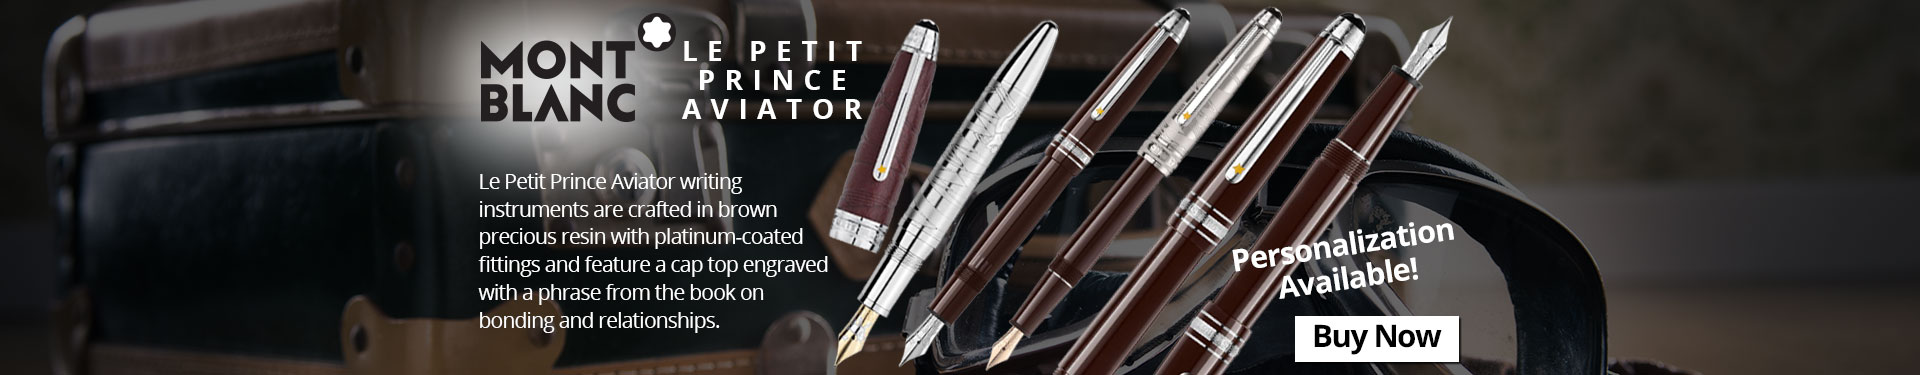 Montblanc Le Petit Prince Aviator